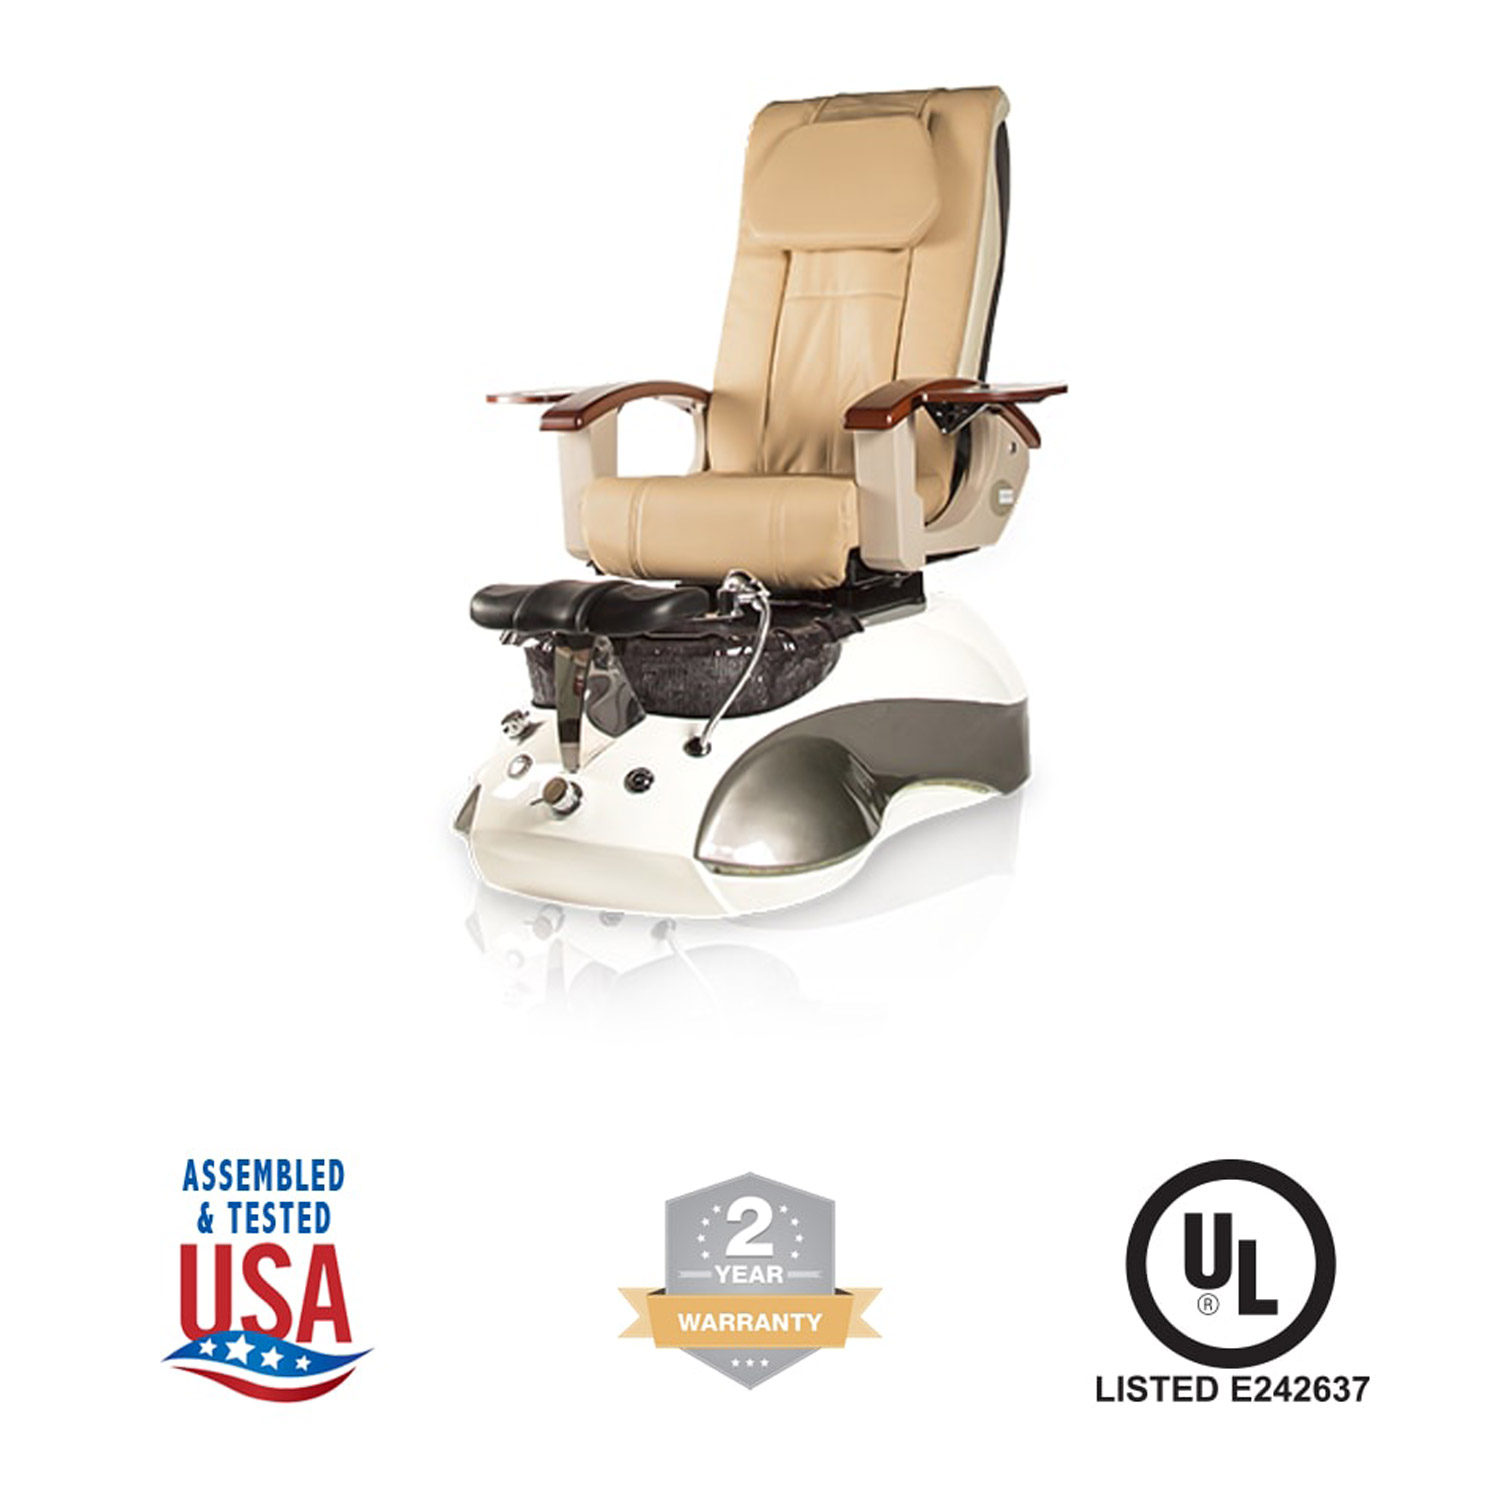 Empress RX Pedicure Spa Chair alternative product image 2